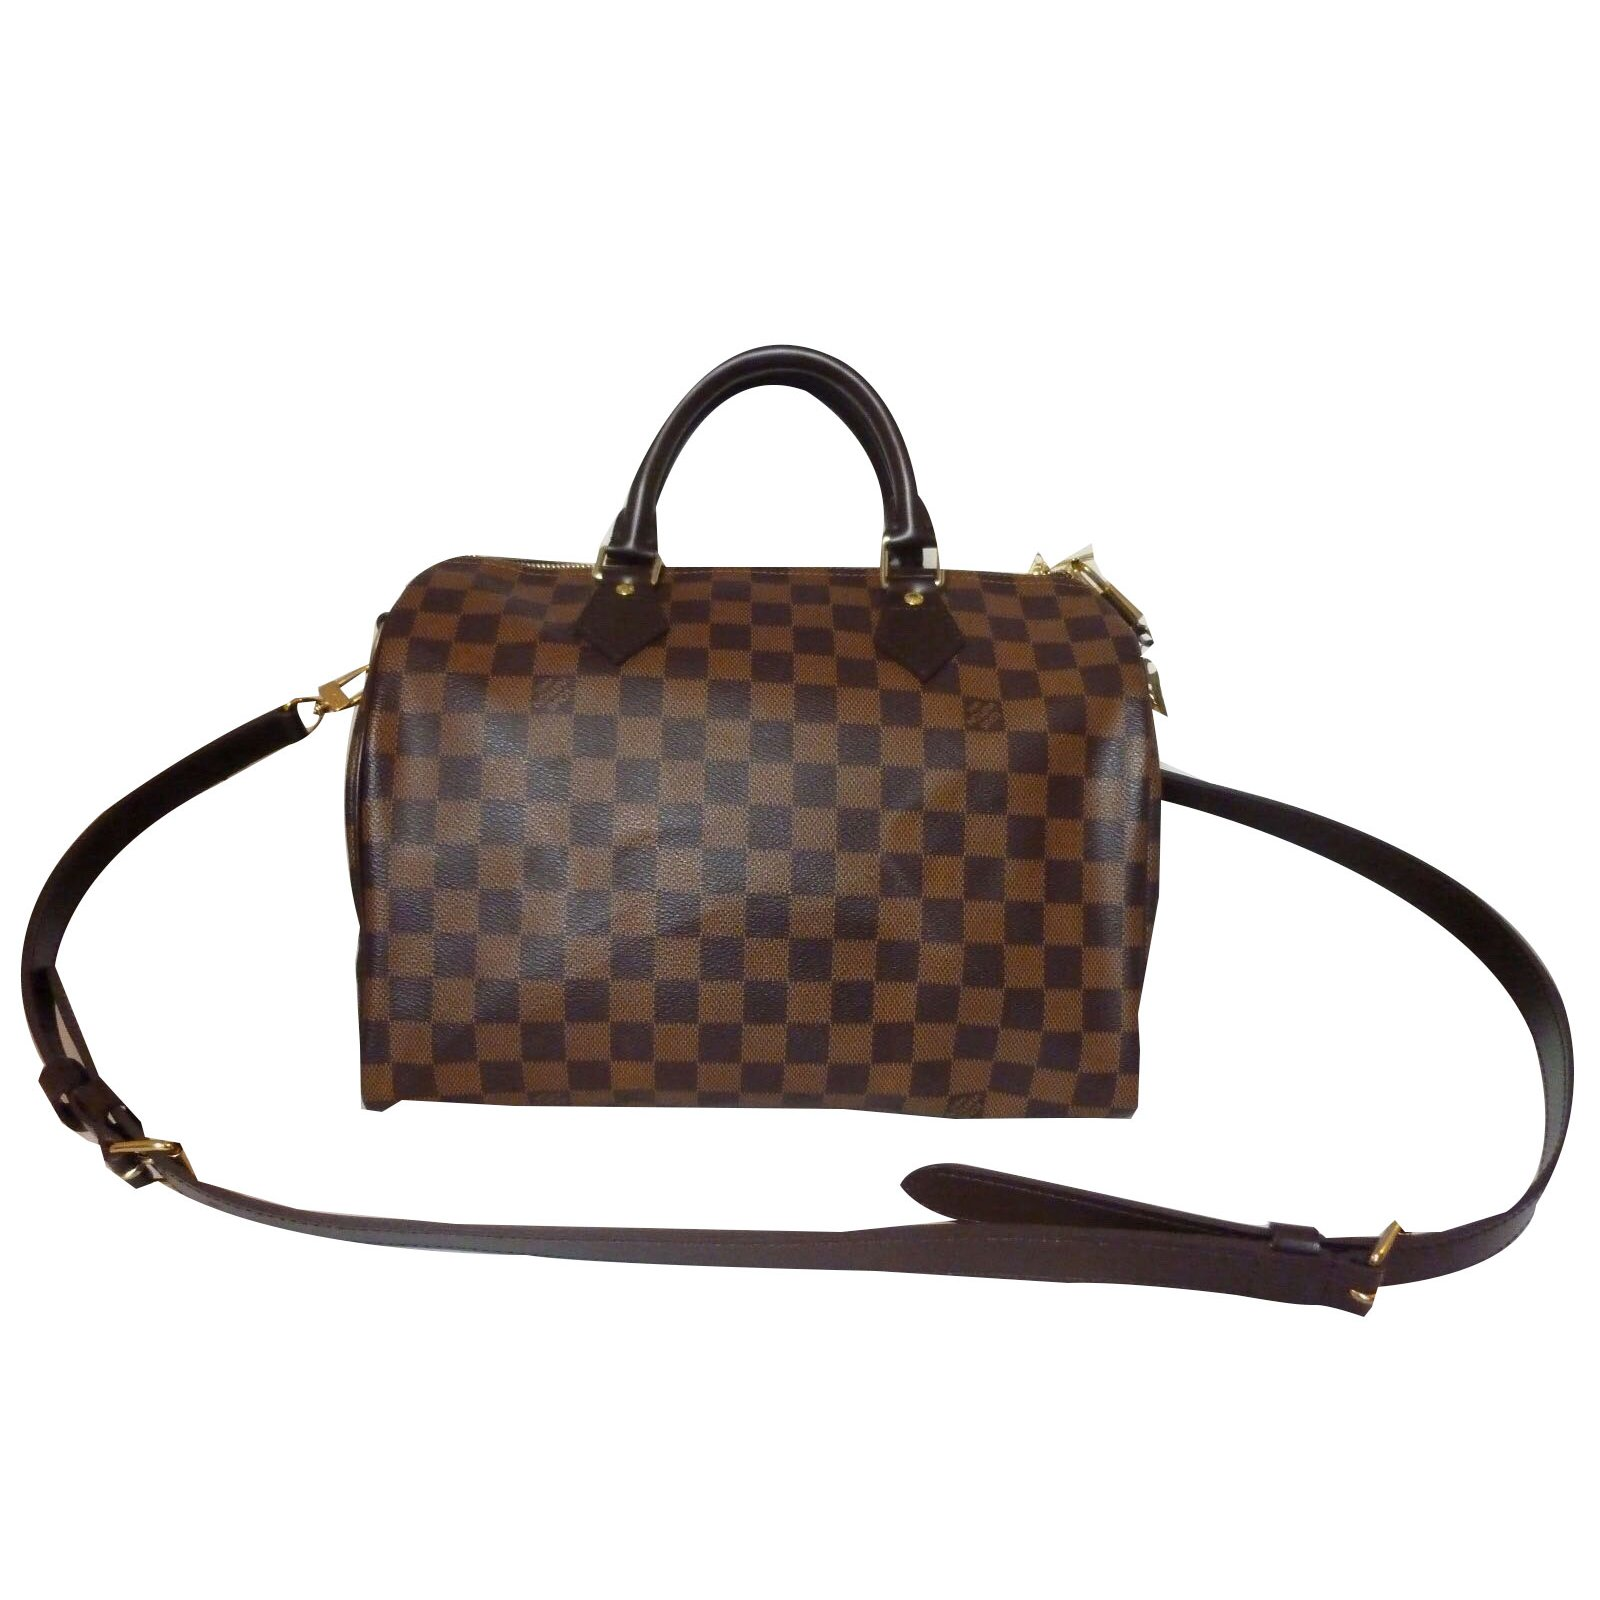 ... Sacs à main Louis Vuitton Superbe Sac Louis Vuitton Speedy 30 à  bandoulière à damier ébène ... 30c5c403443